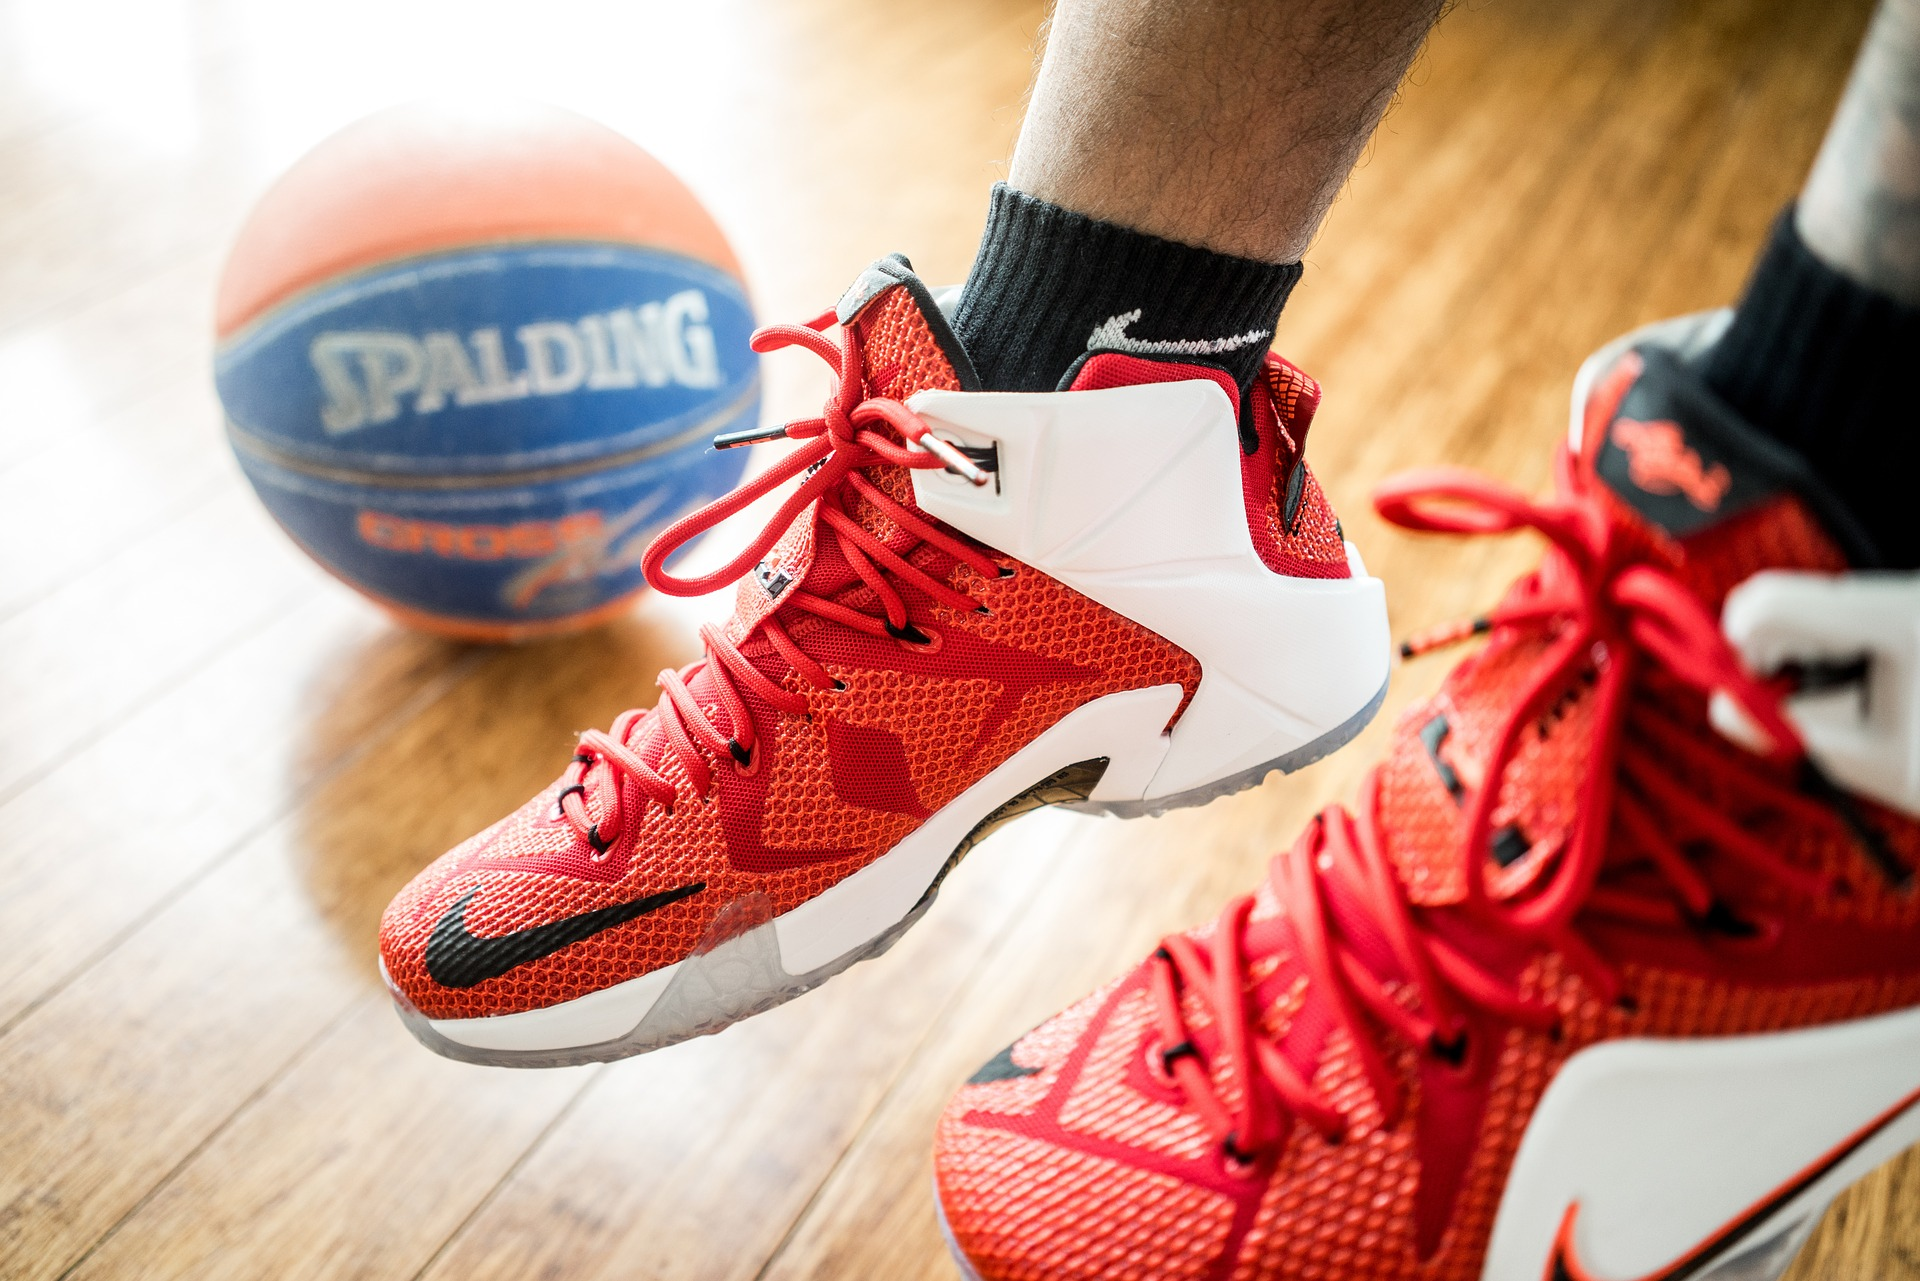 338e3aaa61d Best Outdoor Basketball Shoes 2019 - Exclusive Review   Guide